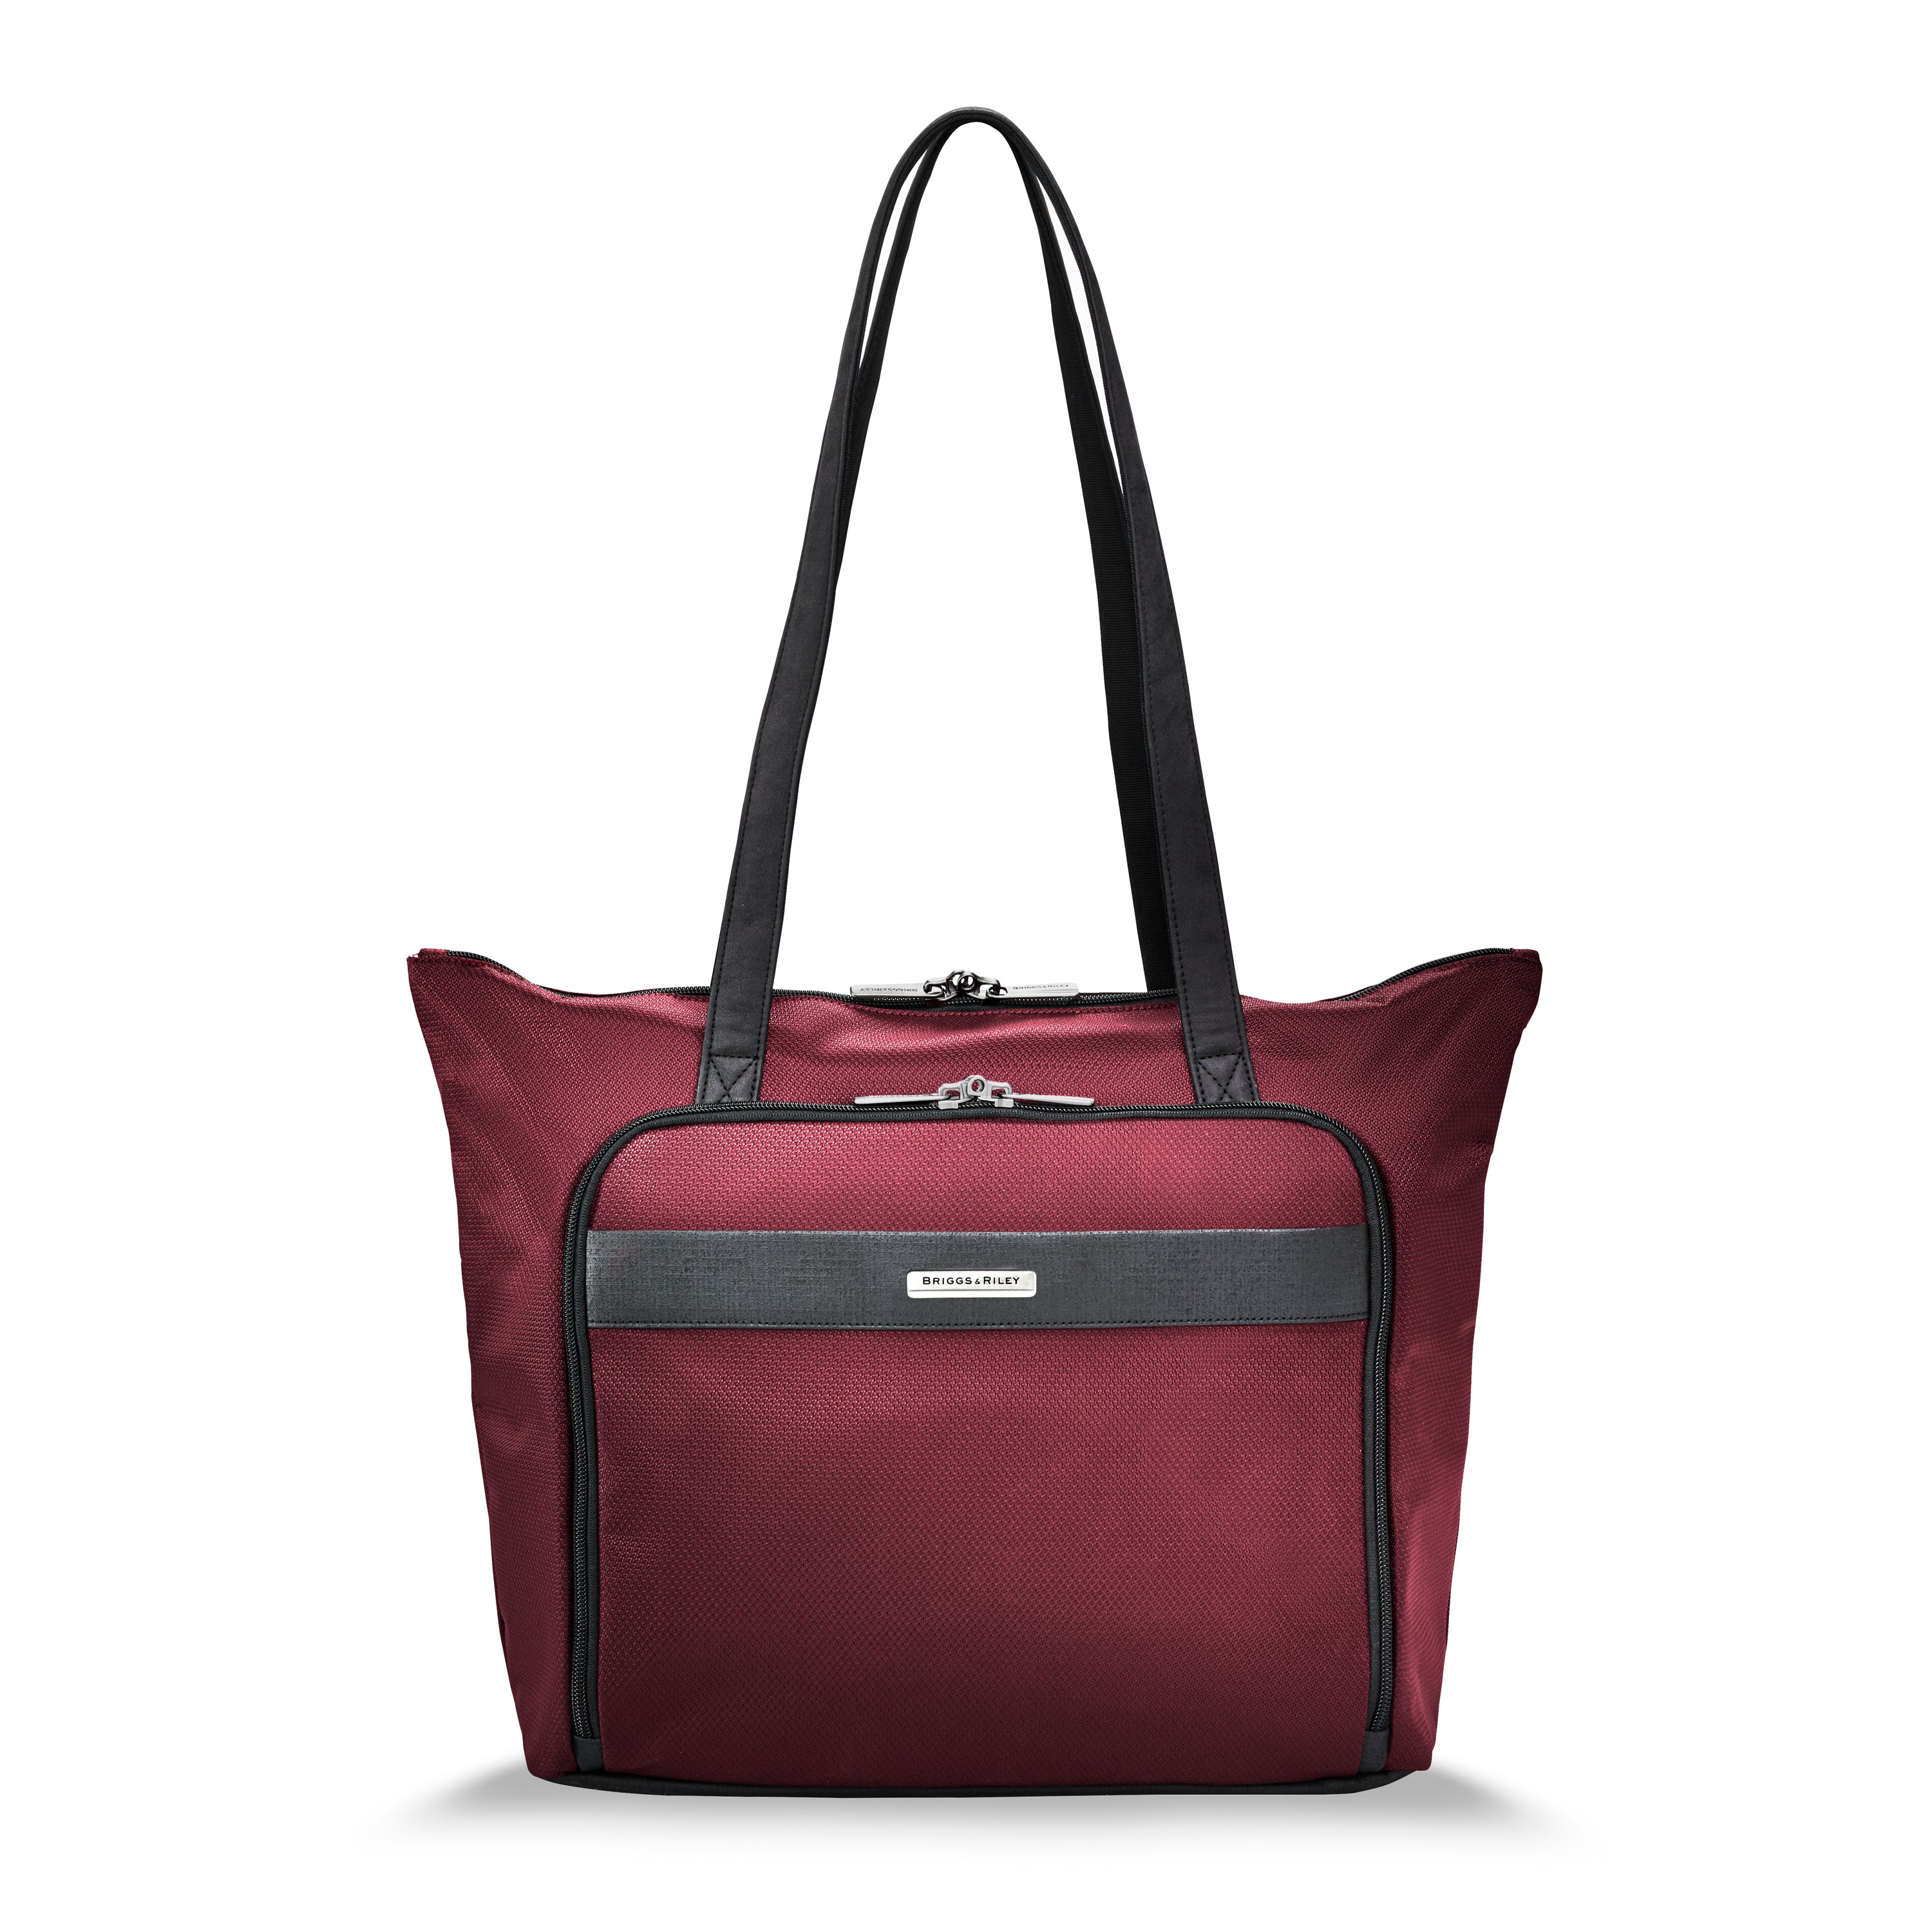 Briggs & Riley Transcend Shopping Tote - Merlot | MEGO